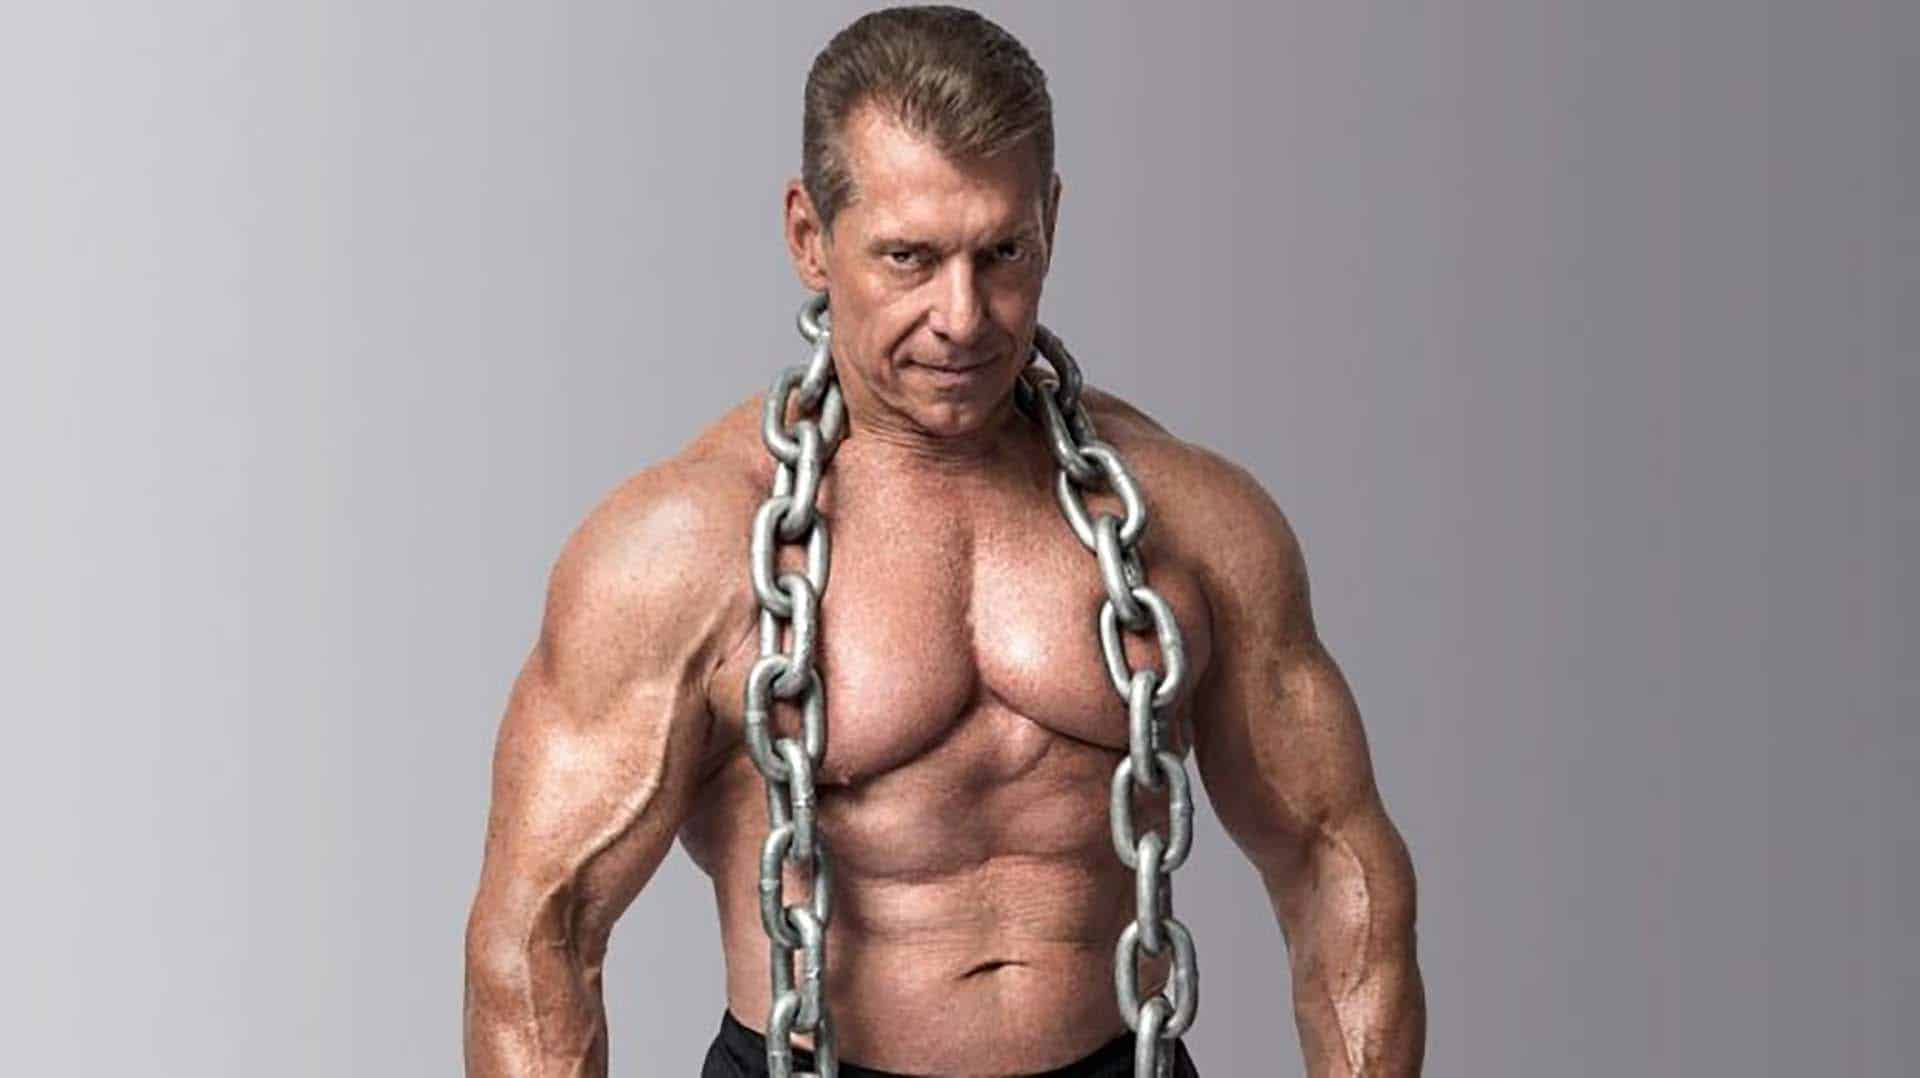 WWE CEO Vince McMahon photo for Muscle and Fitness Magazine shirtless with bulging muscles and a big chain hanging around his neck